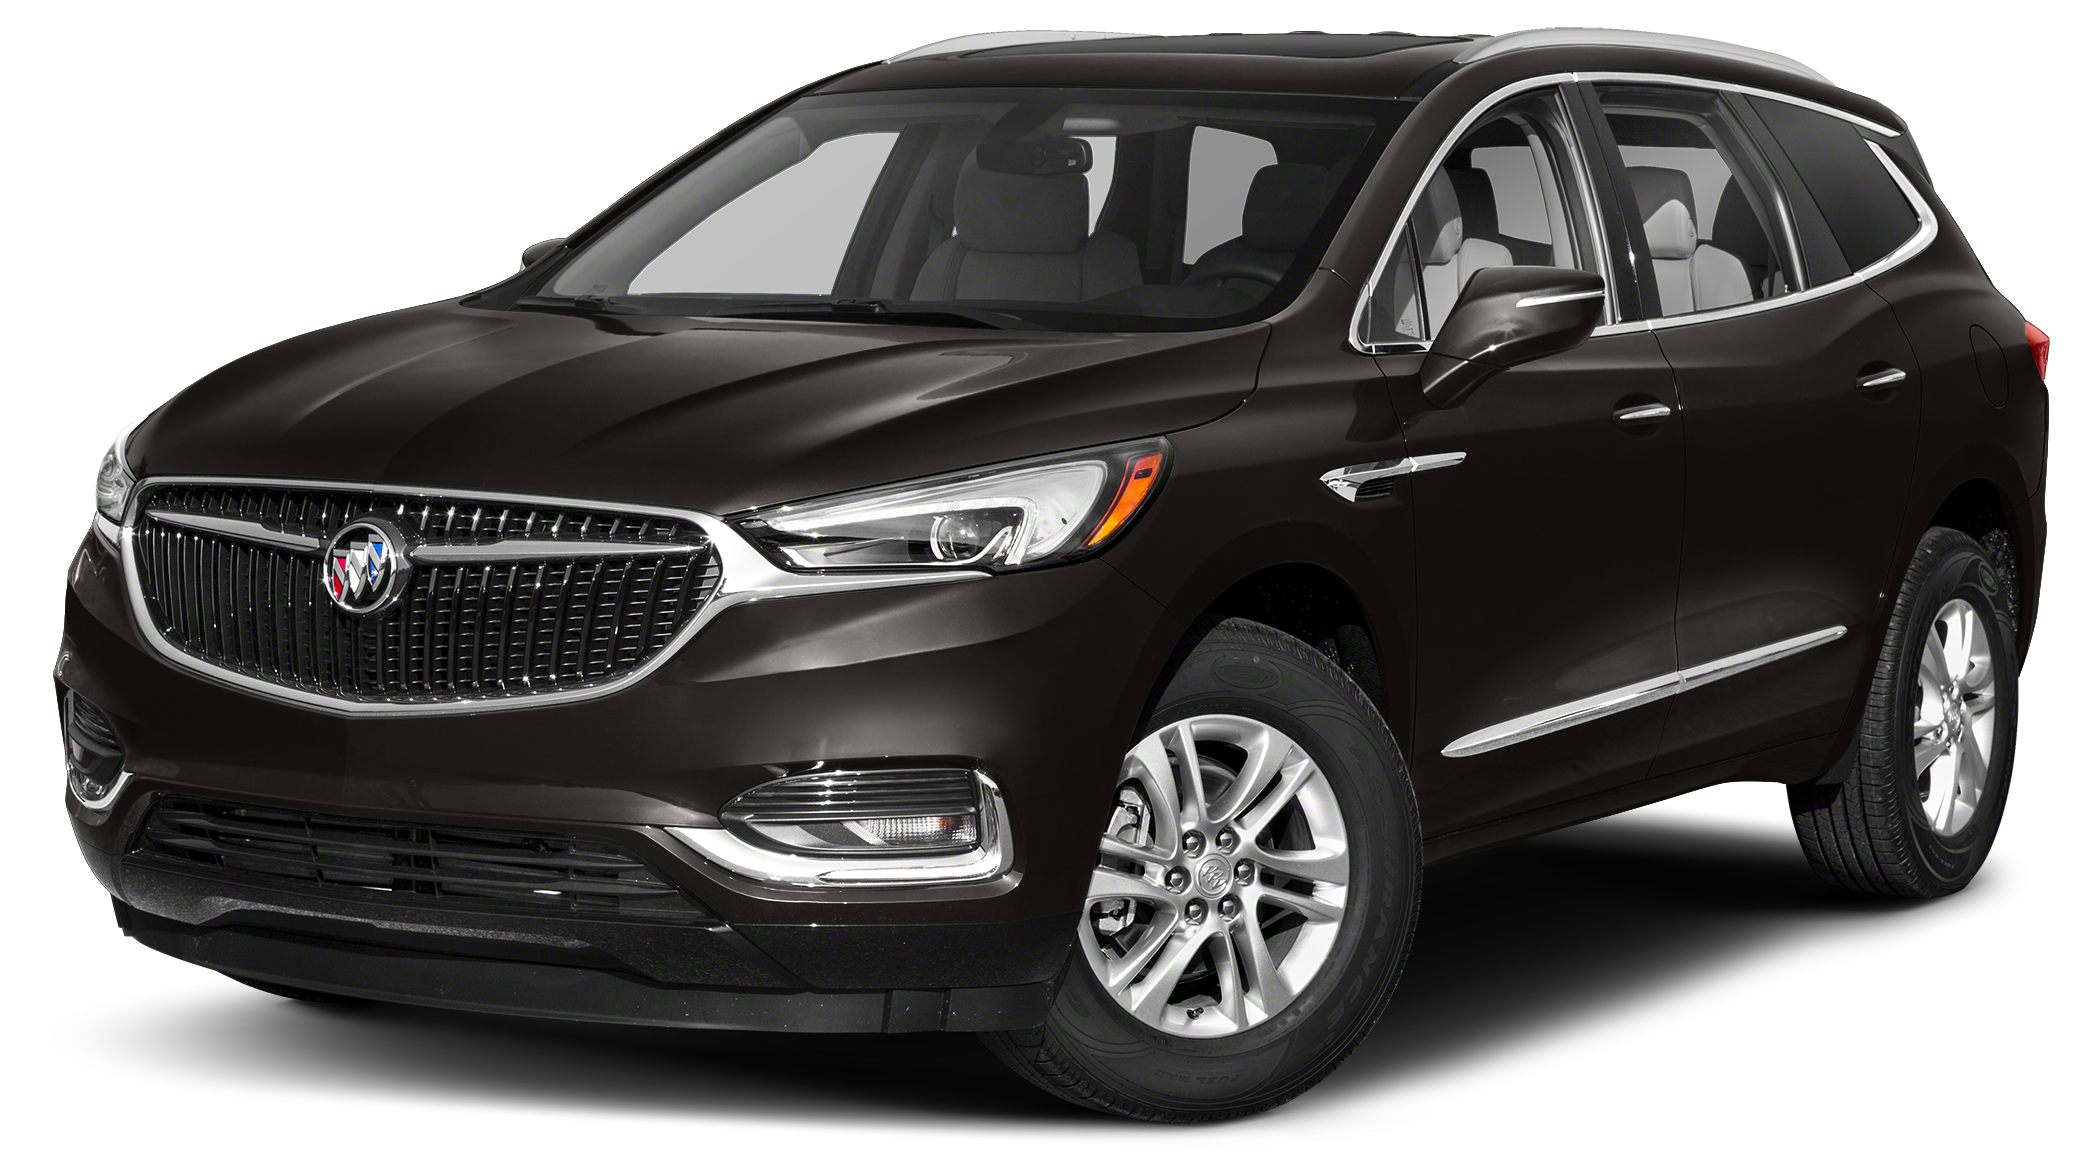 2018 Buick Enclave Essence When youre ready for an automotive upgrade try this 2018 Buick Enclav